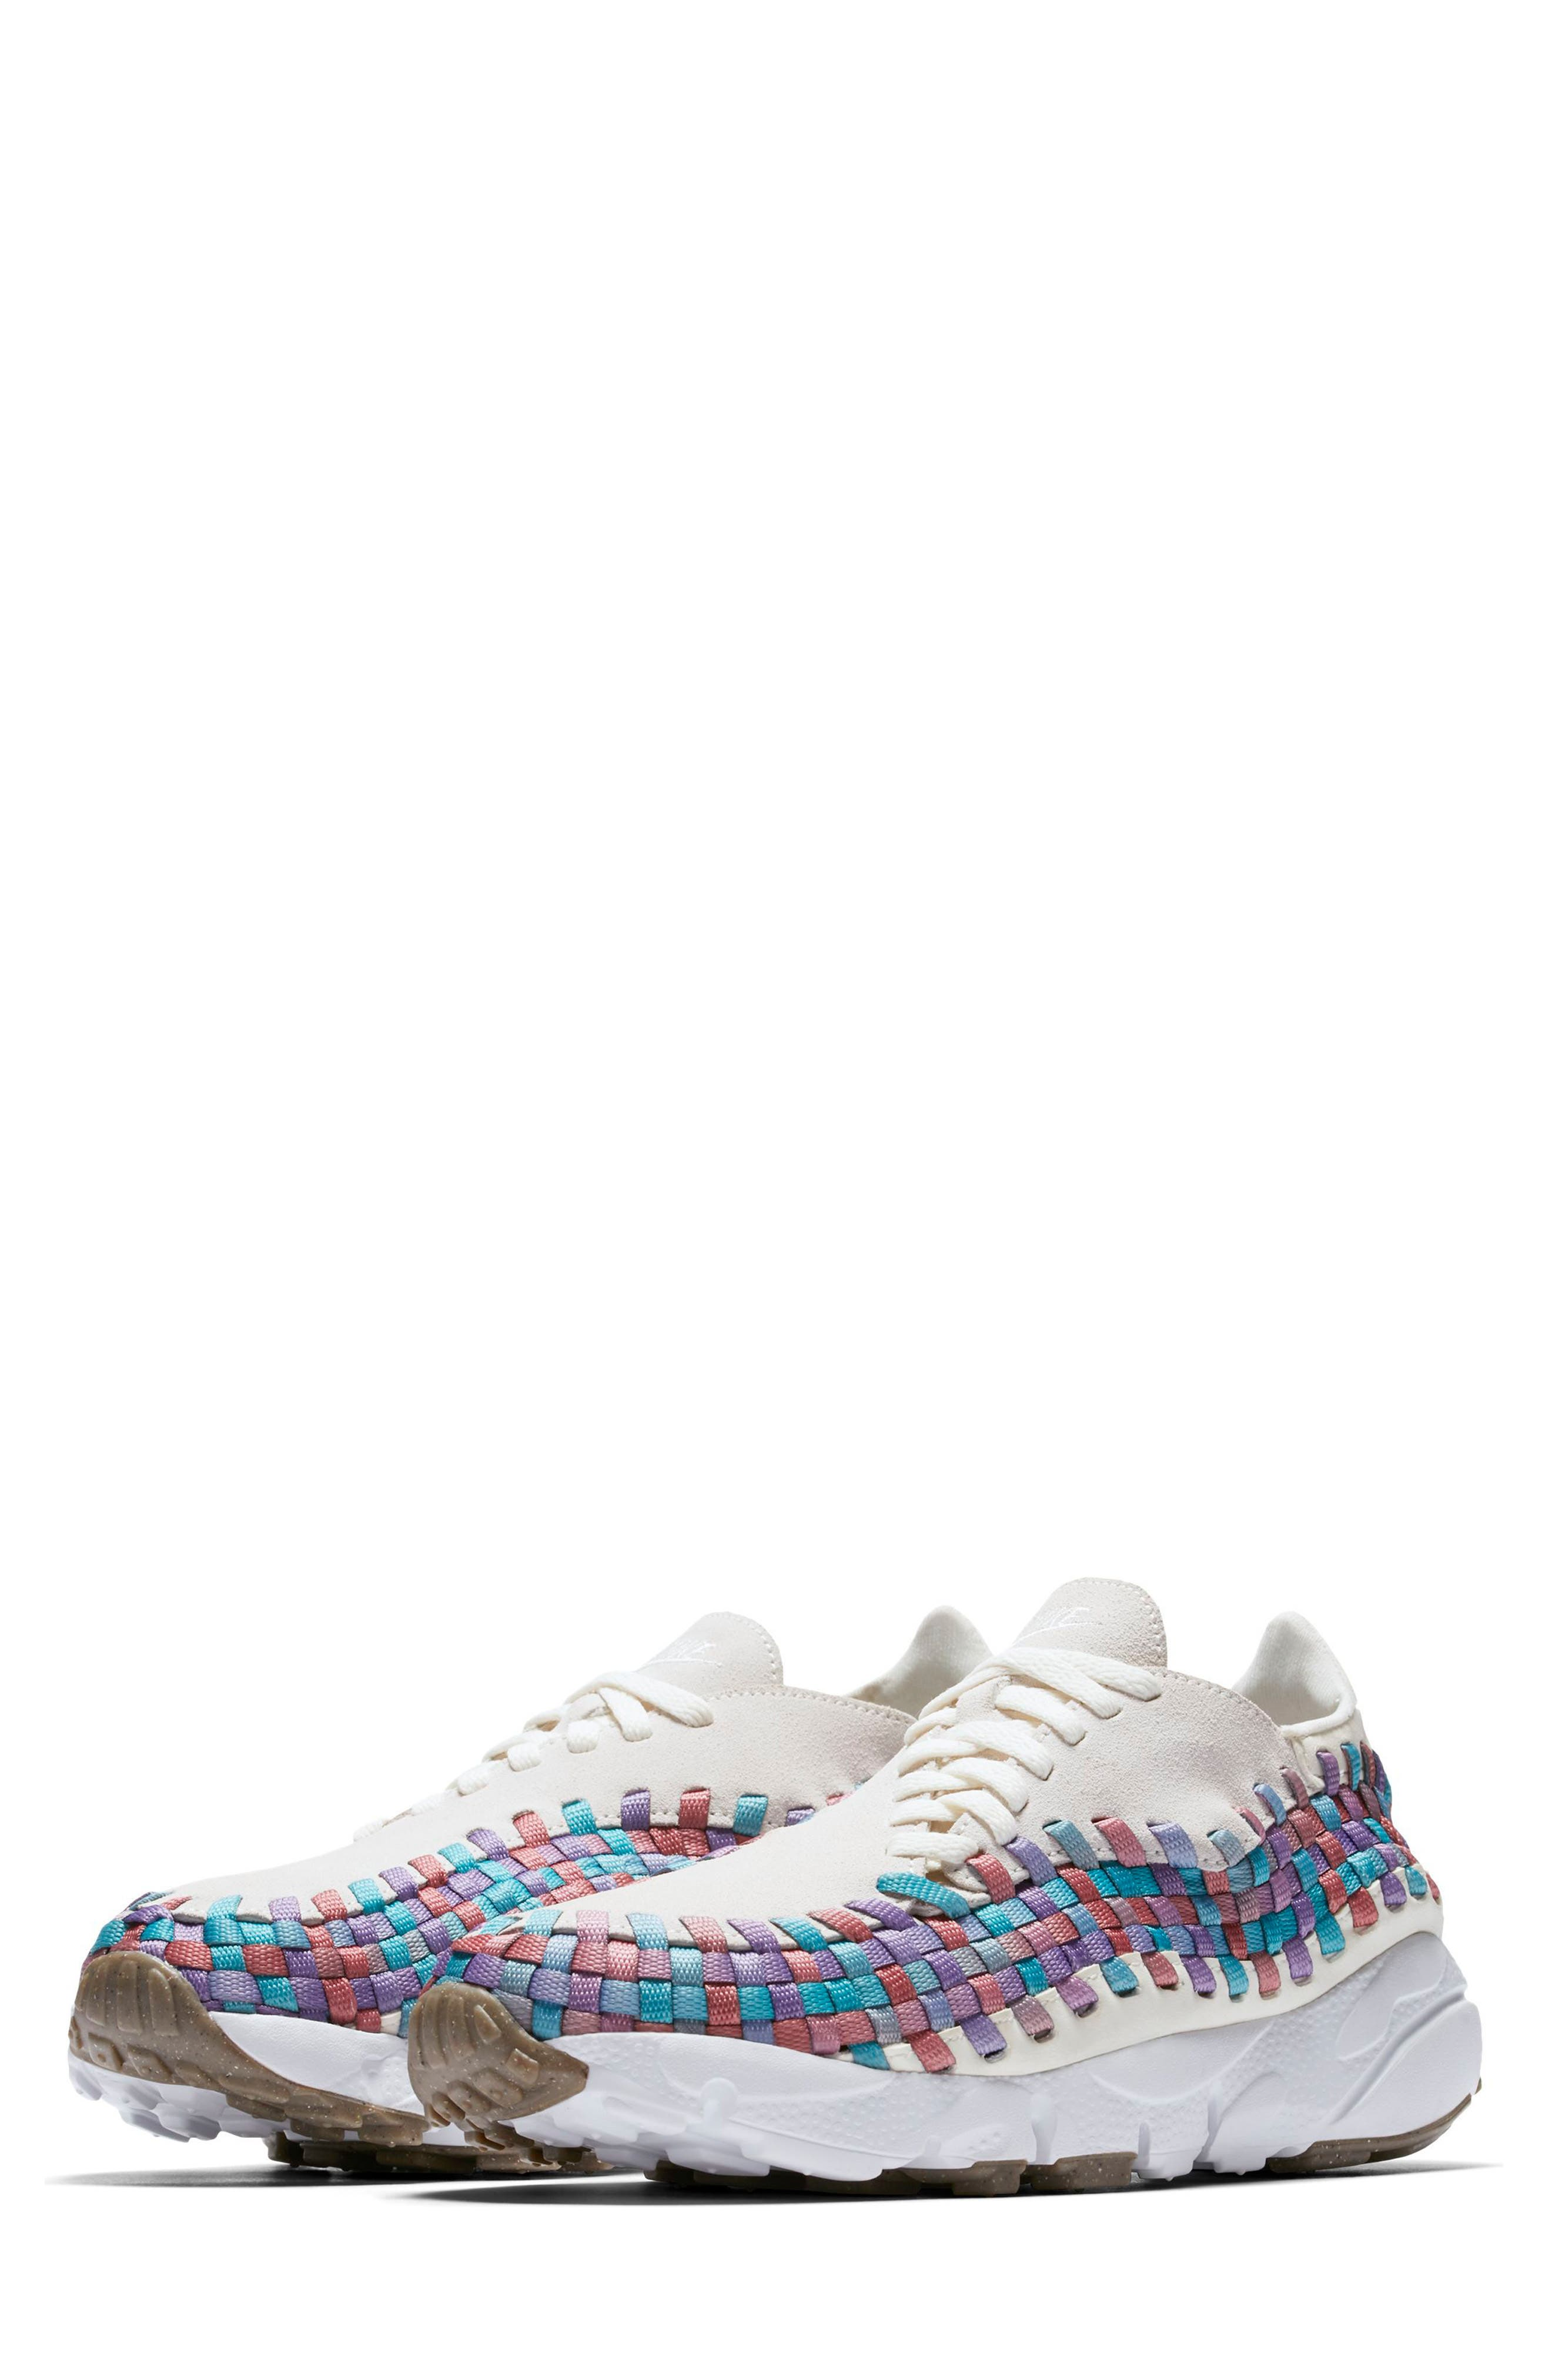 Air Footscape Woven Sneaker,                         Main,                         color, Sail/ White/ Red/ Teal/ Gum